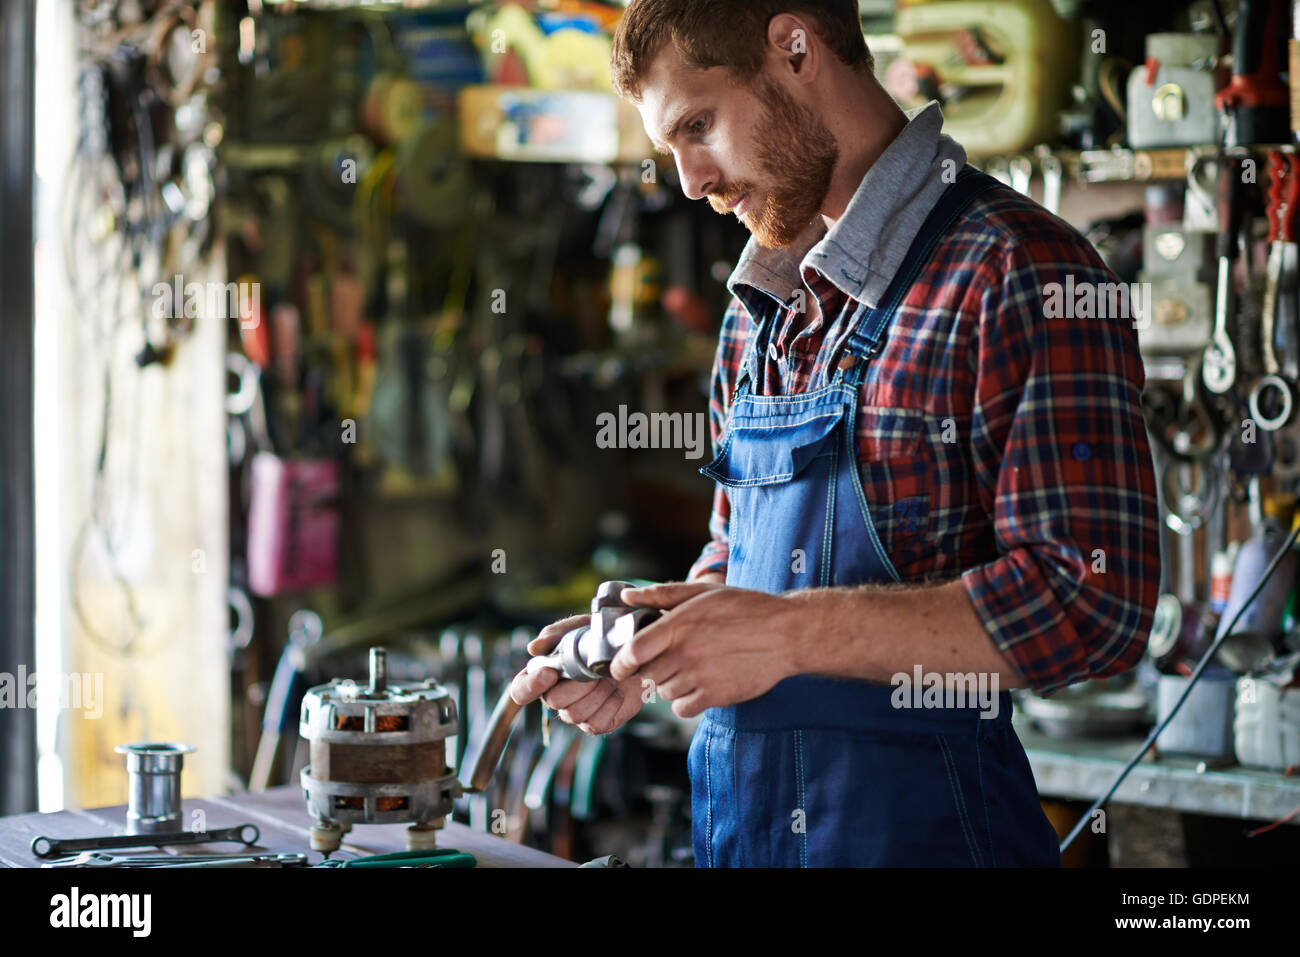 Looking at spare part - Stock Image